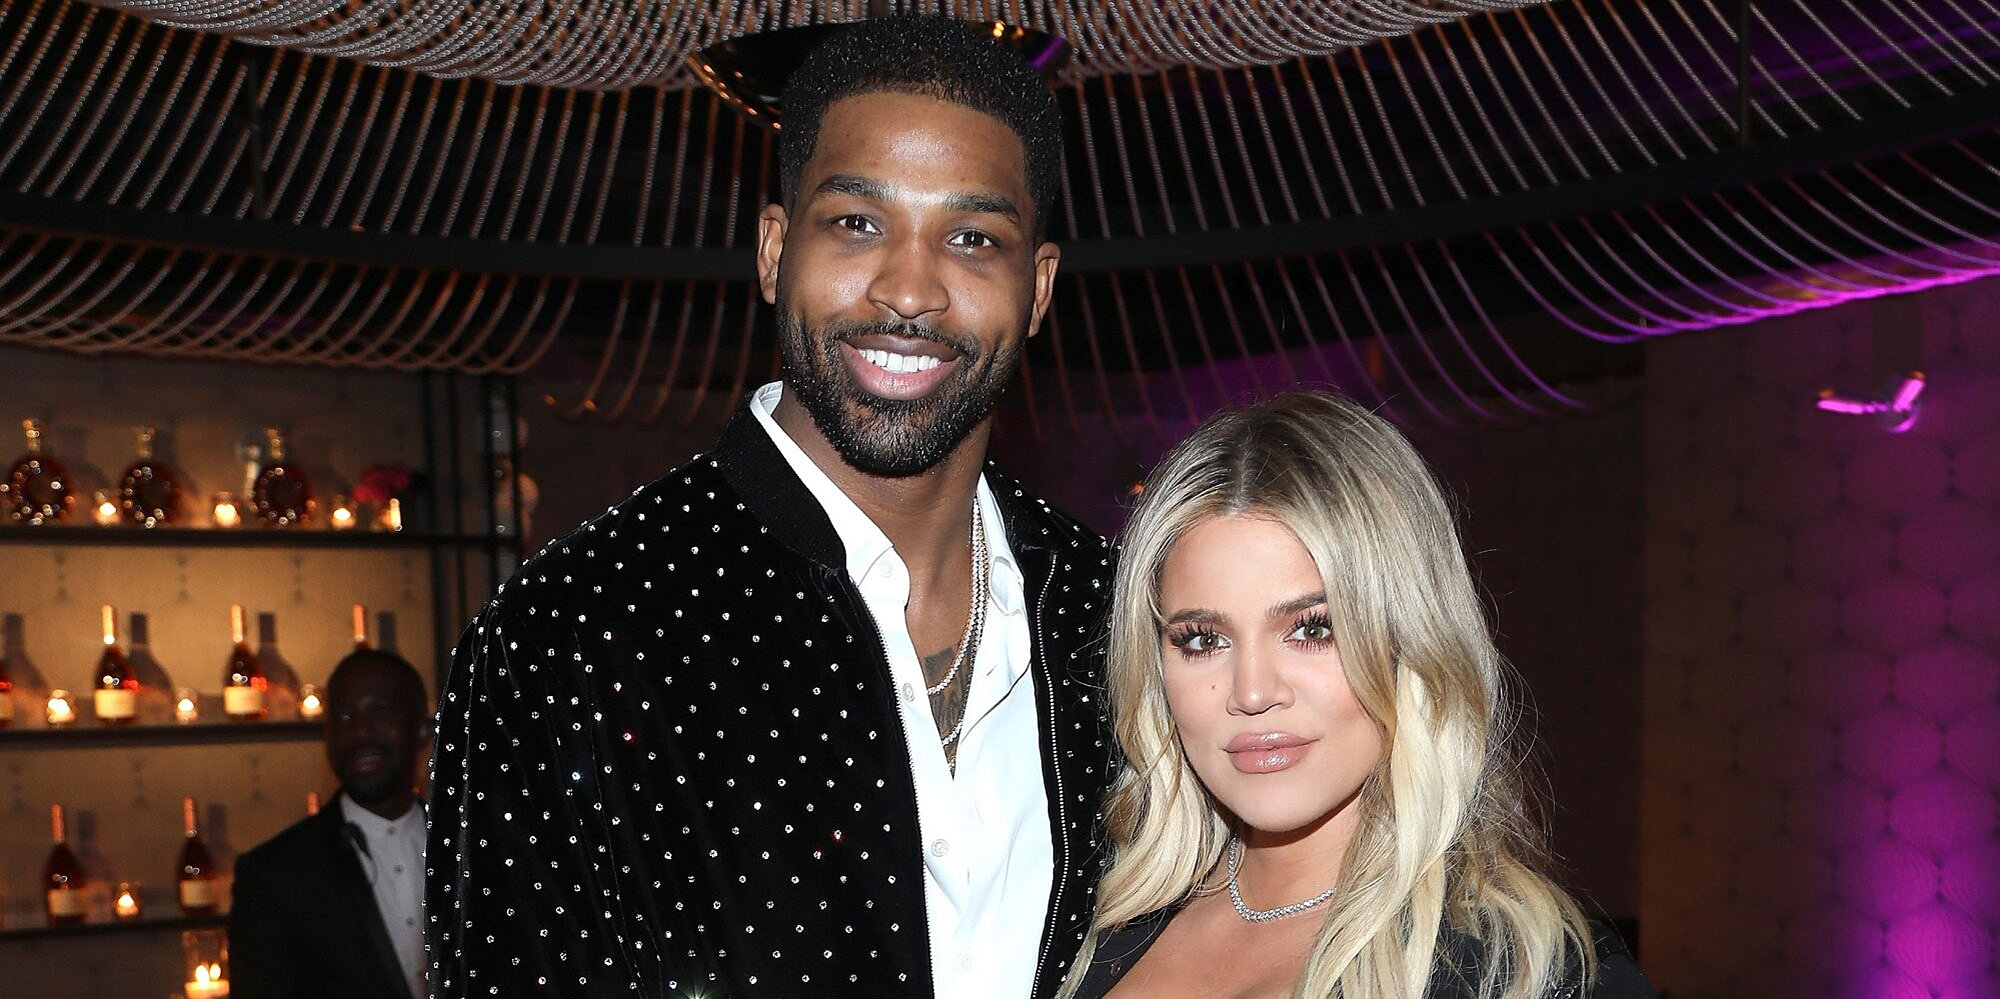 Khloé Kardashian 'Is Done Falling for' Tristan Thompson's 'Empty Promises,' Says Source: She's 'Disappointed'